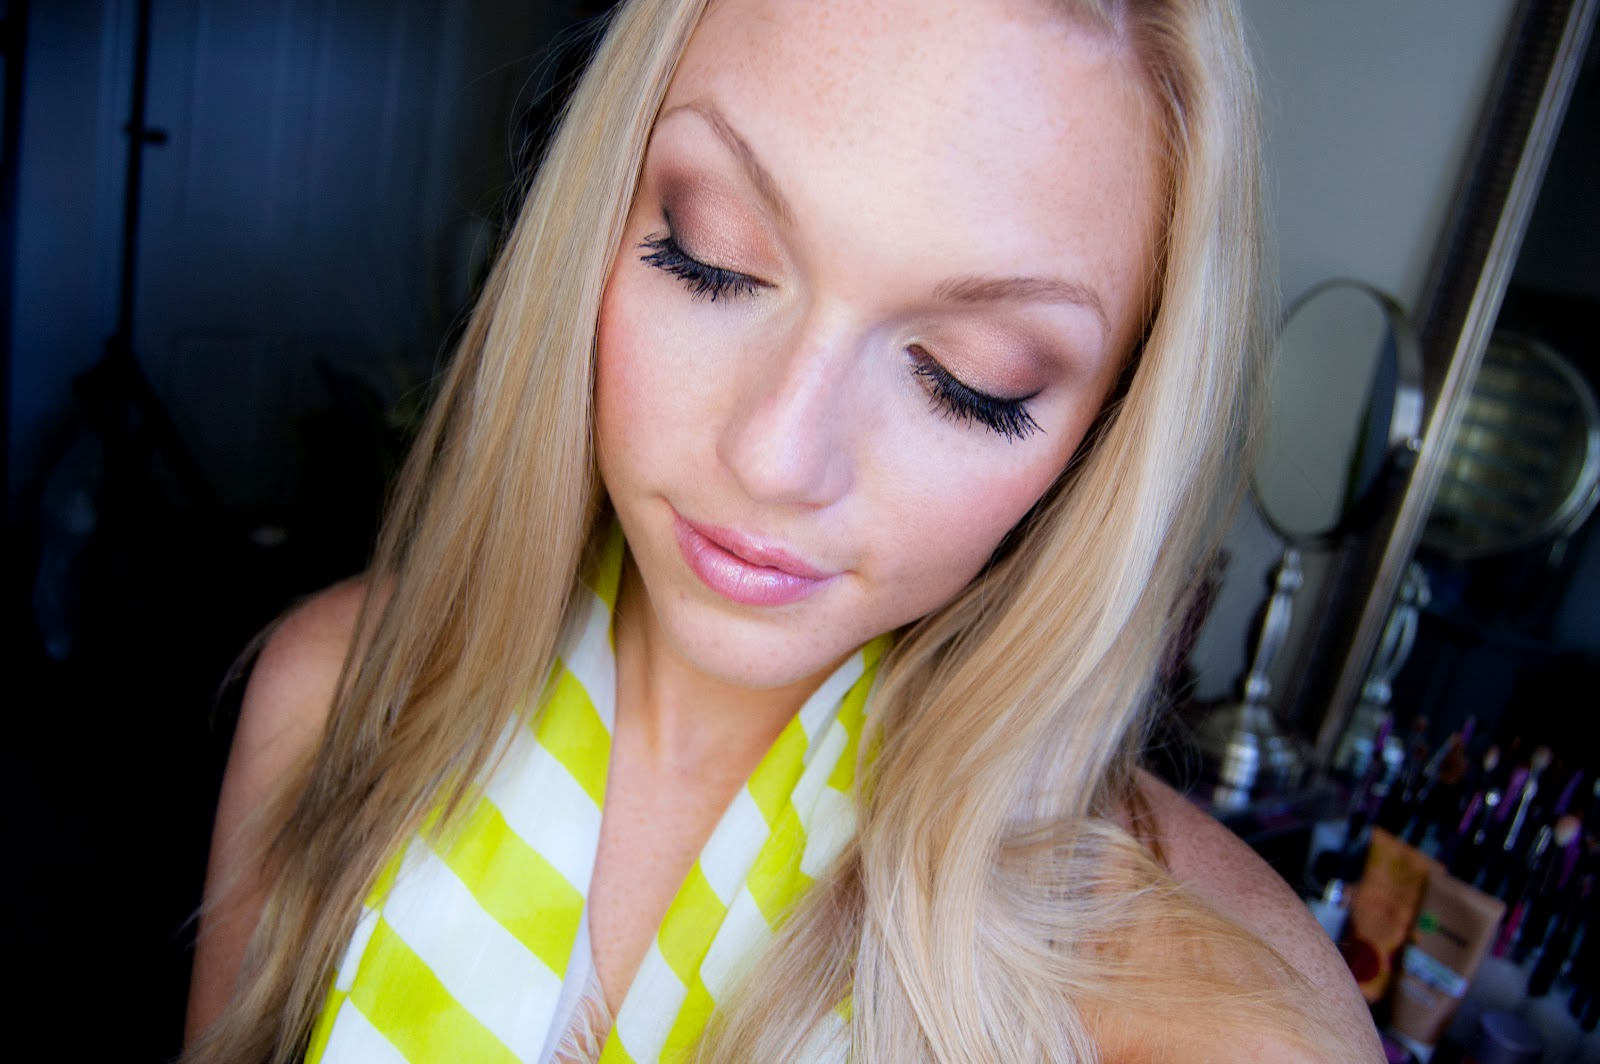 Makeup by alli